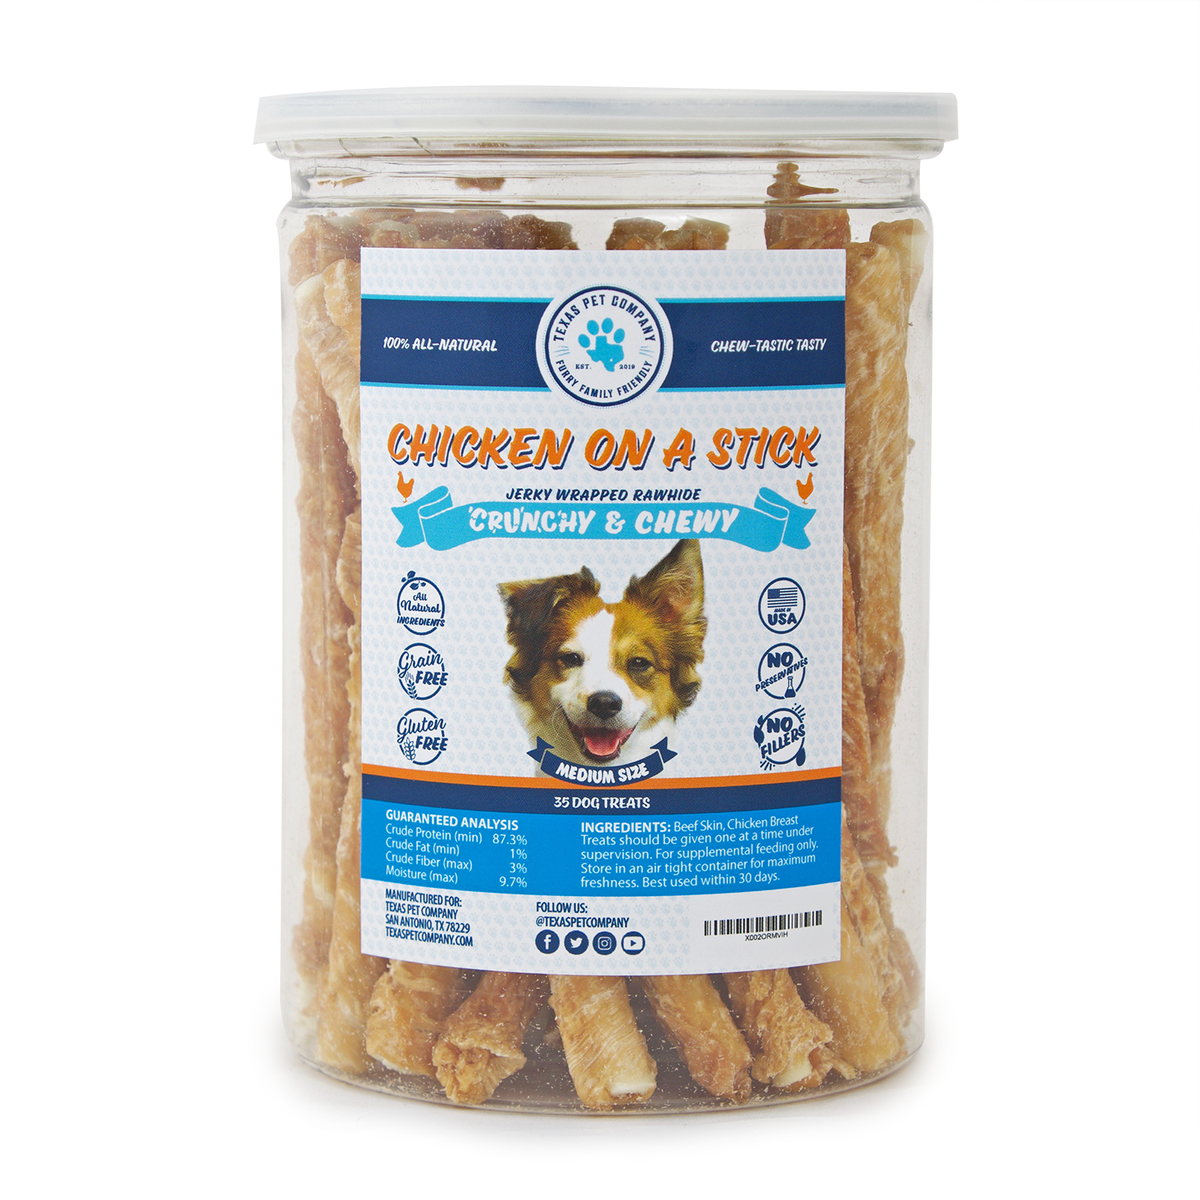 Texas Pet Company Jerky On A Stick Jerky Wrapped Rawhide Sticks - All-Natural - for Small to Medium Dogs - Made in The USA - 35ct resealable jar